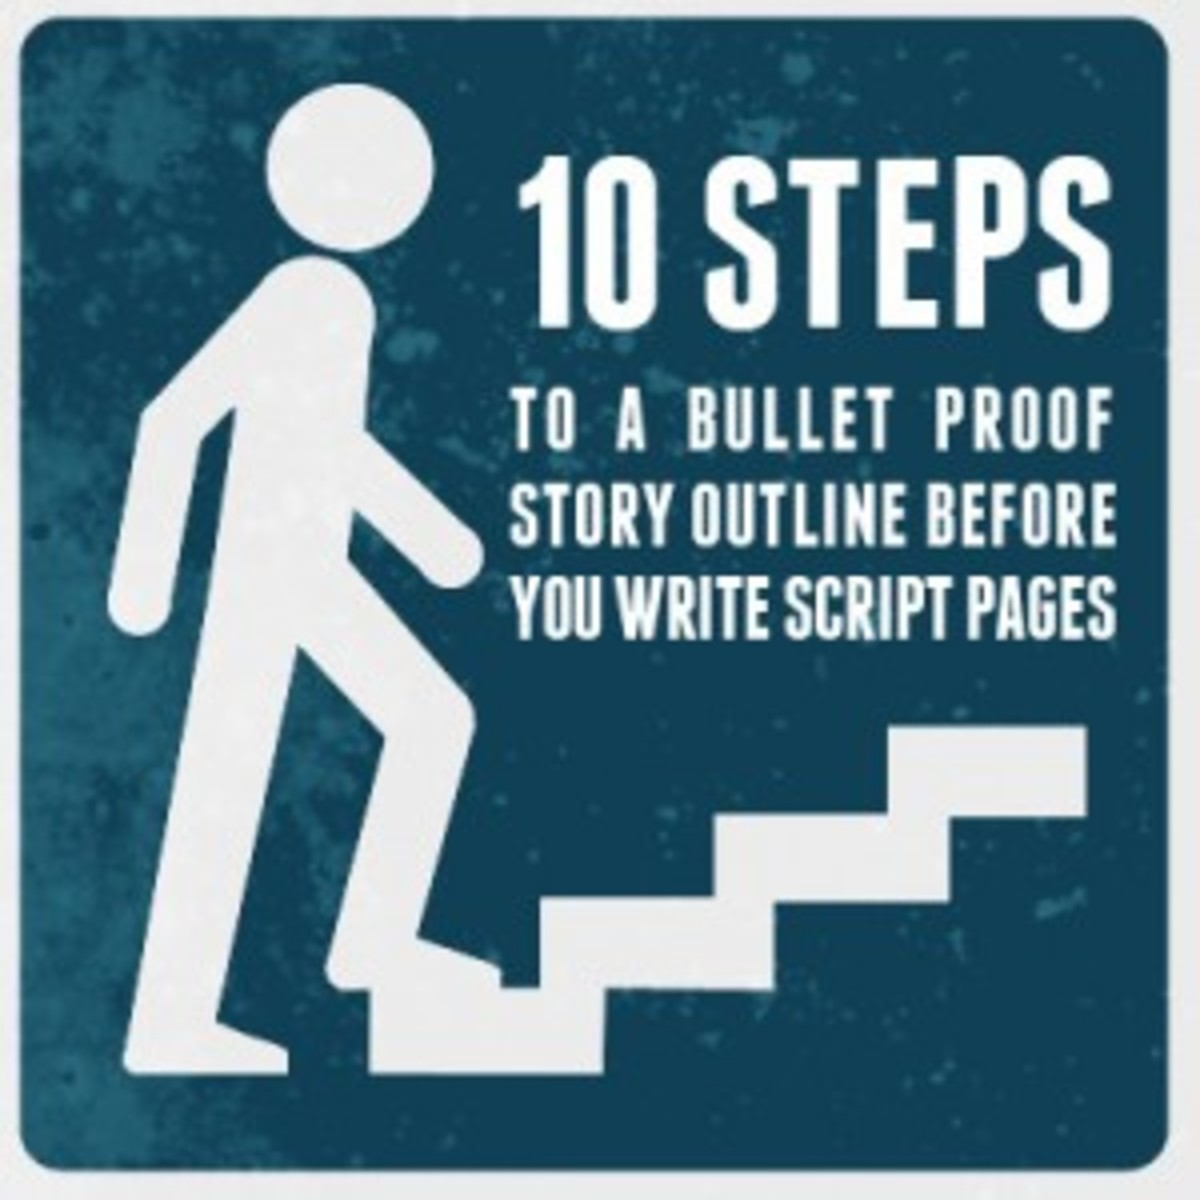 Learn how to bullet proof your story outline before your write script pages in this OnDemand Webinar at Writer's Store.